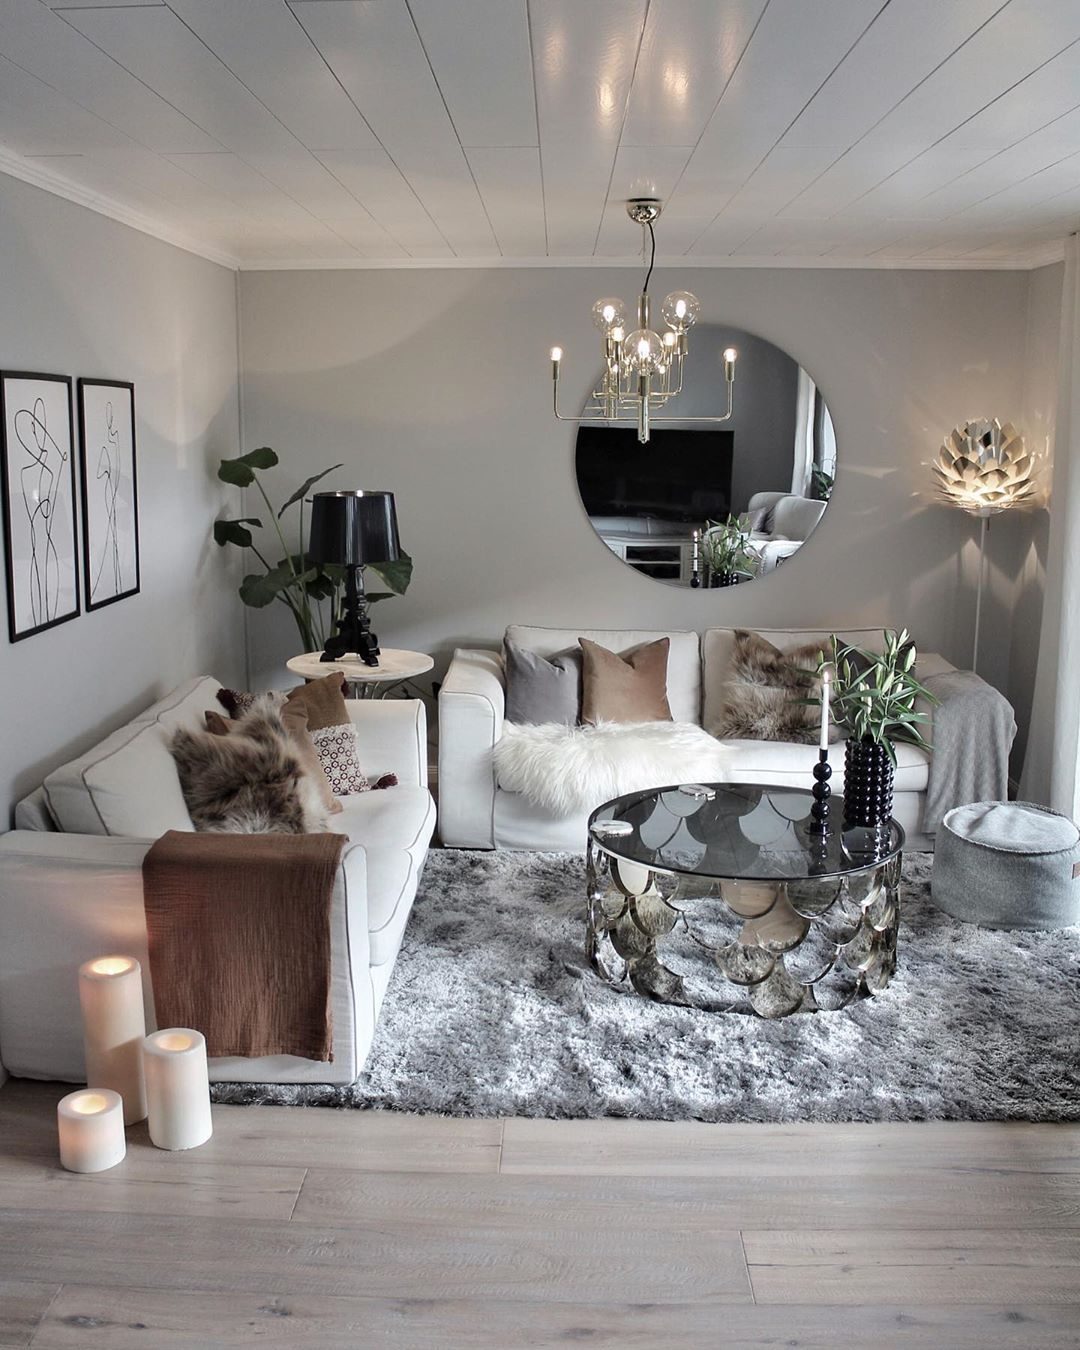 31 Trend Living Room Decor Ideas 2020 23 In 2020 Small Living Room Design Luxury Living Room Design Silver Living Room